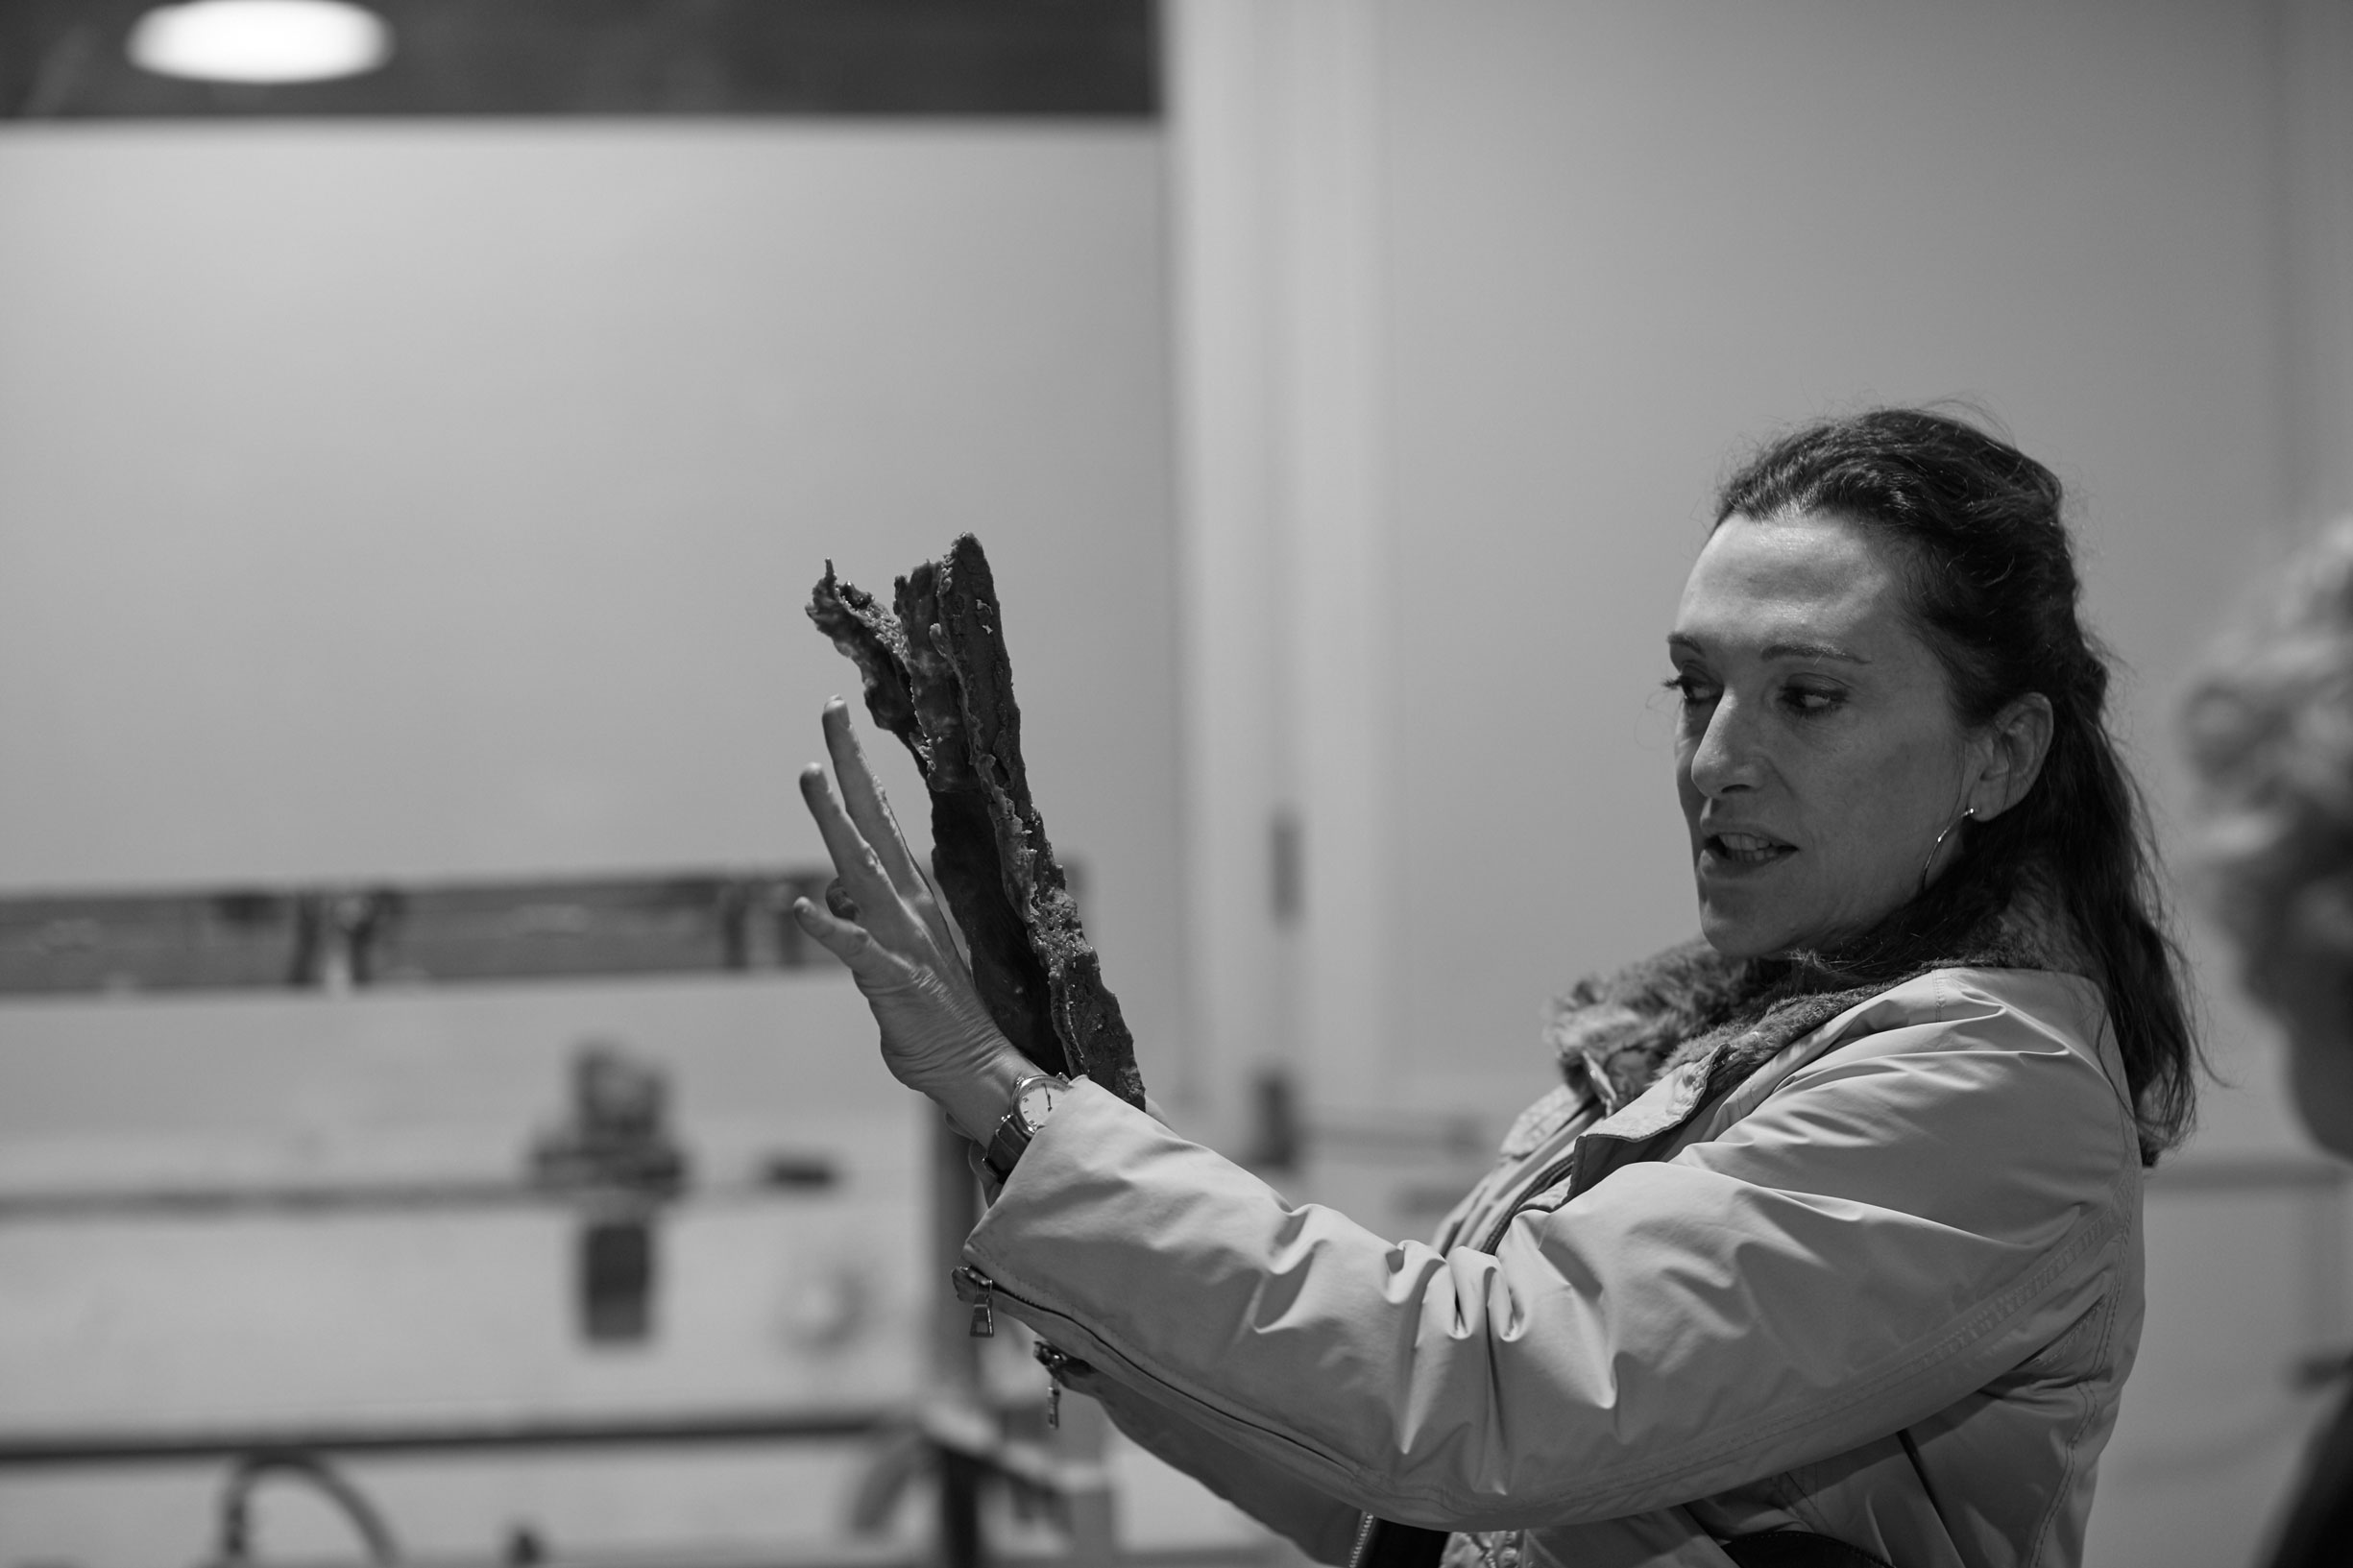 Cristina Iglesias working in Alfa Arte, project ARROYOS OLVIDADOS - FORGOTTEN STREAMS. Bronze. For Bloomberg Place, London